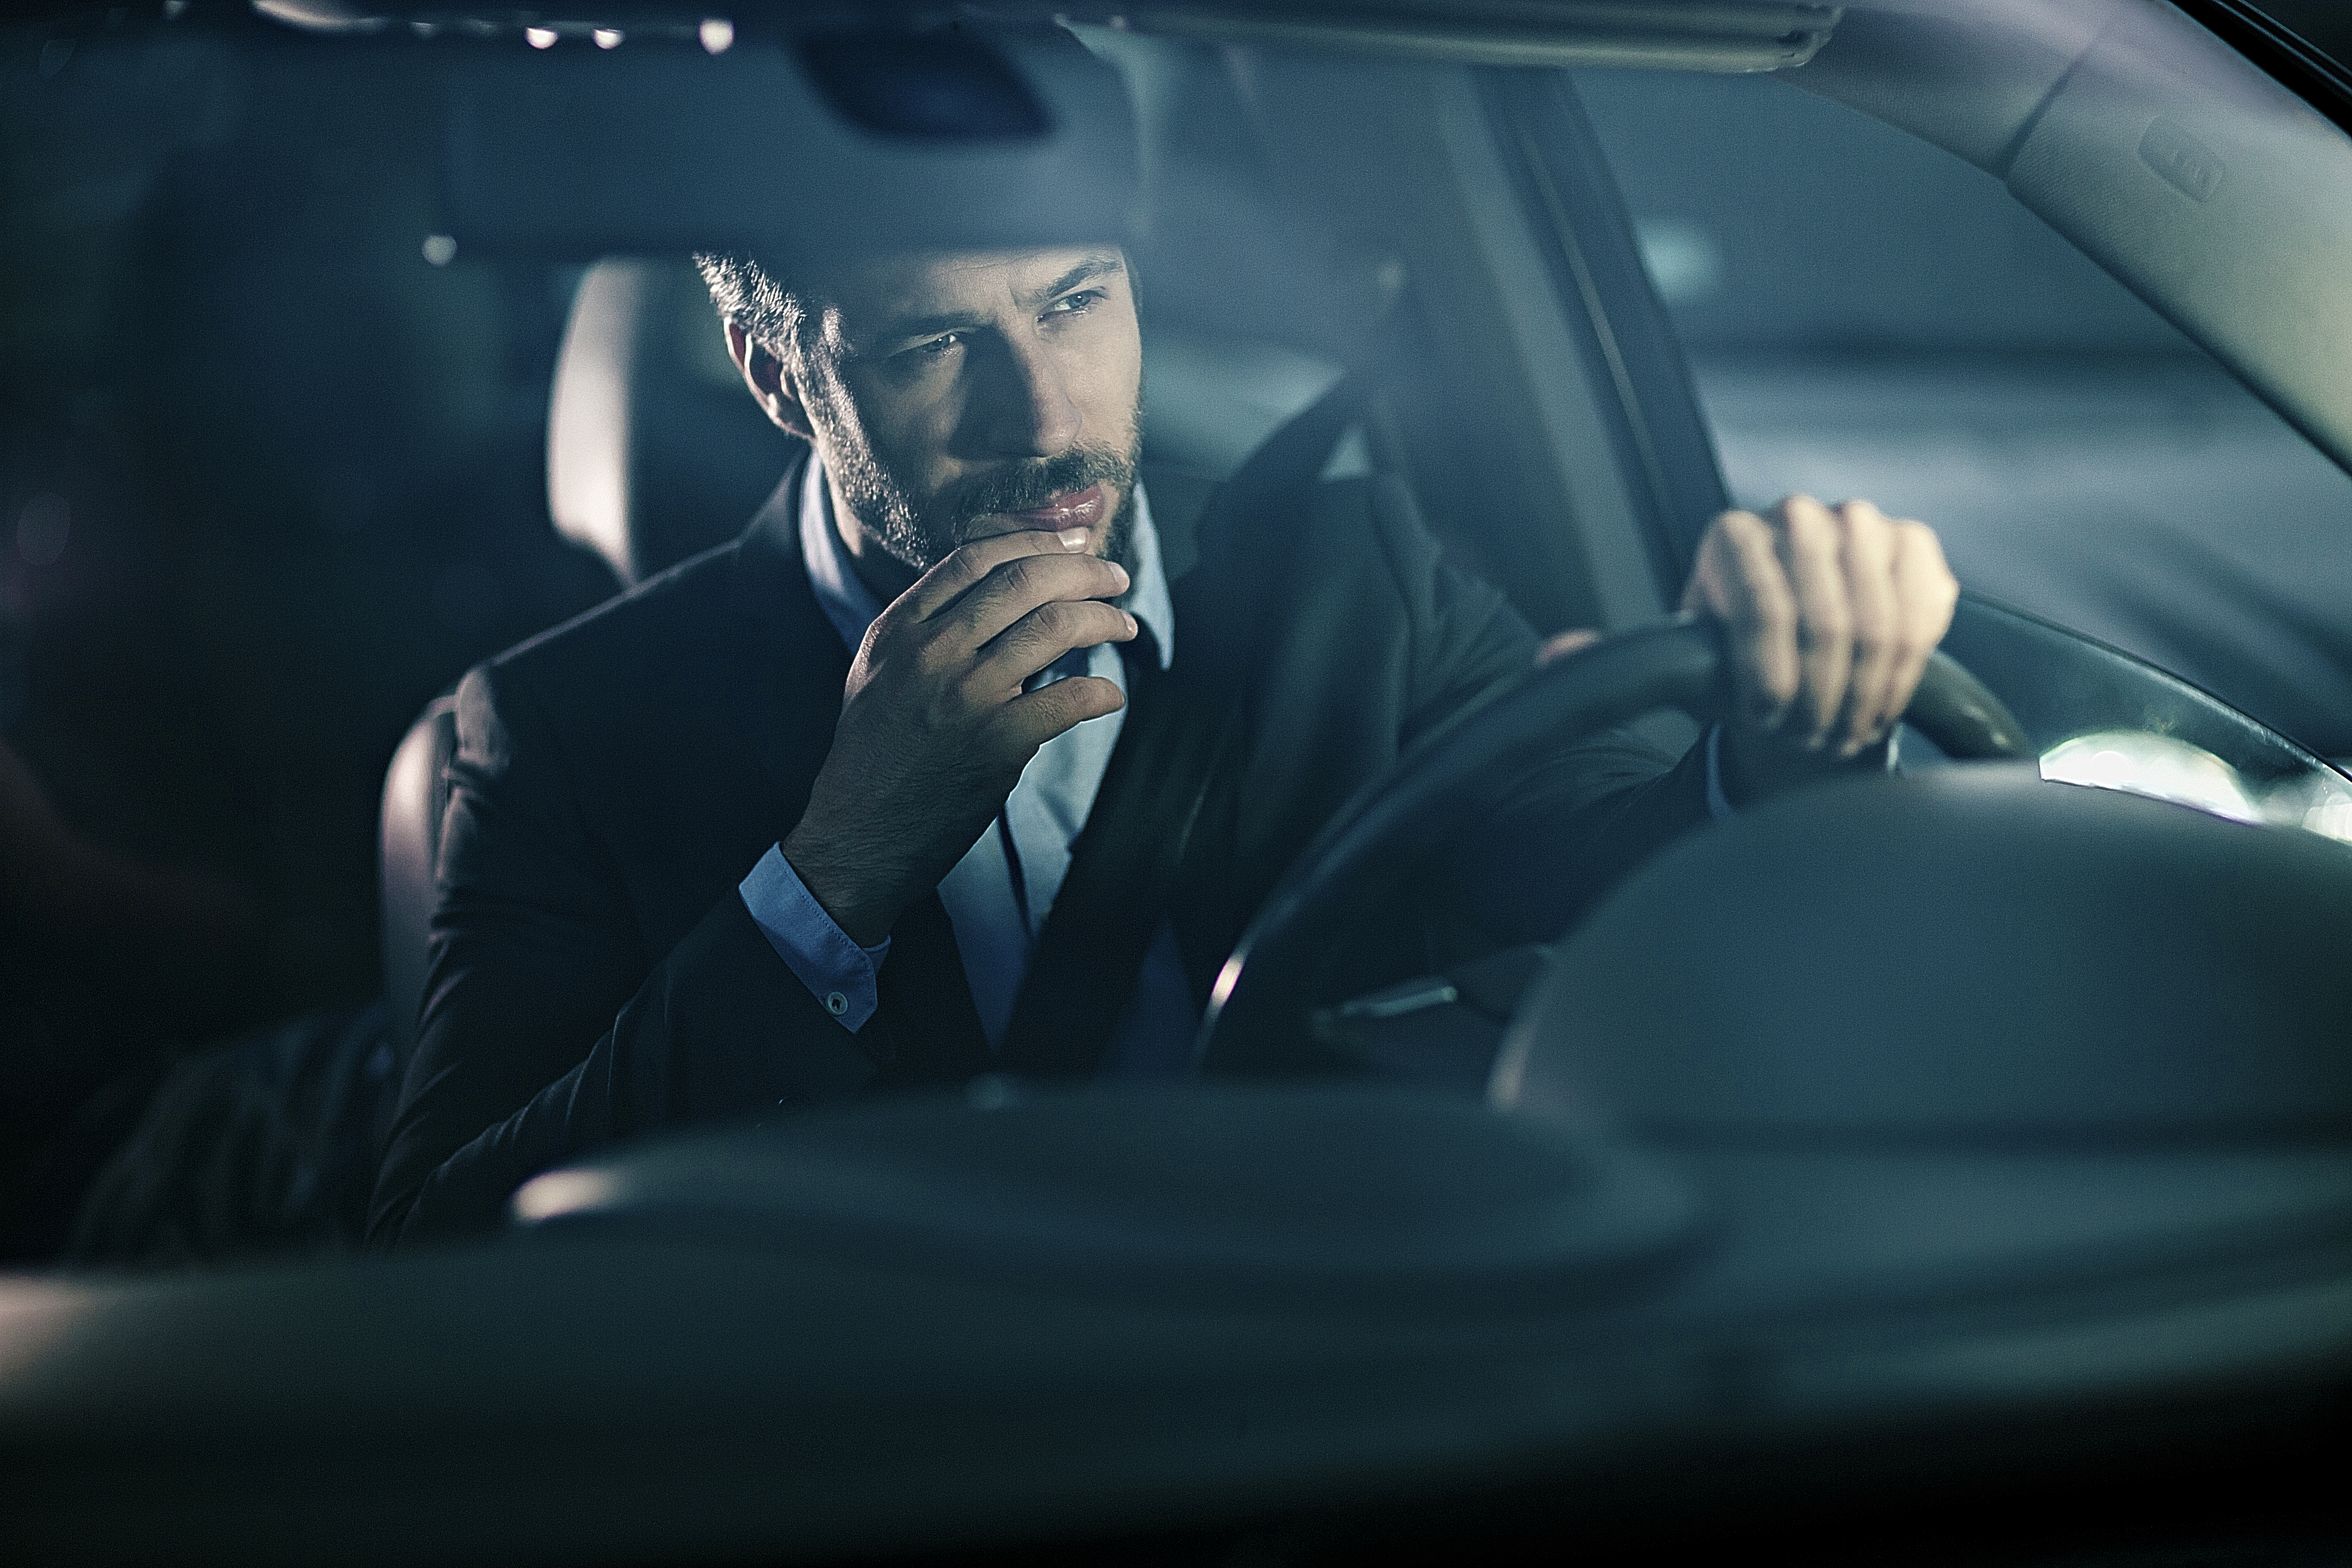 car shopper contemplating affordable luxury vehicle